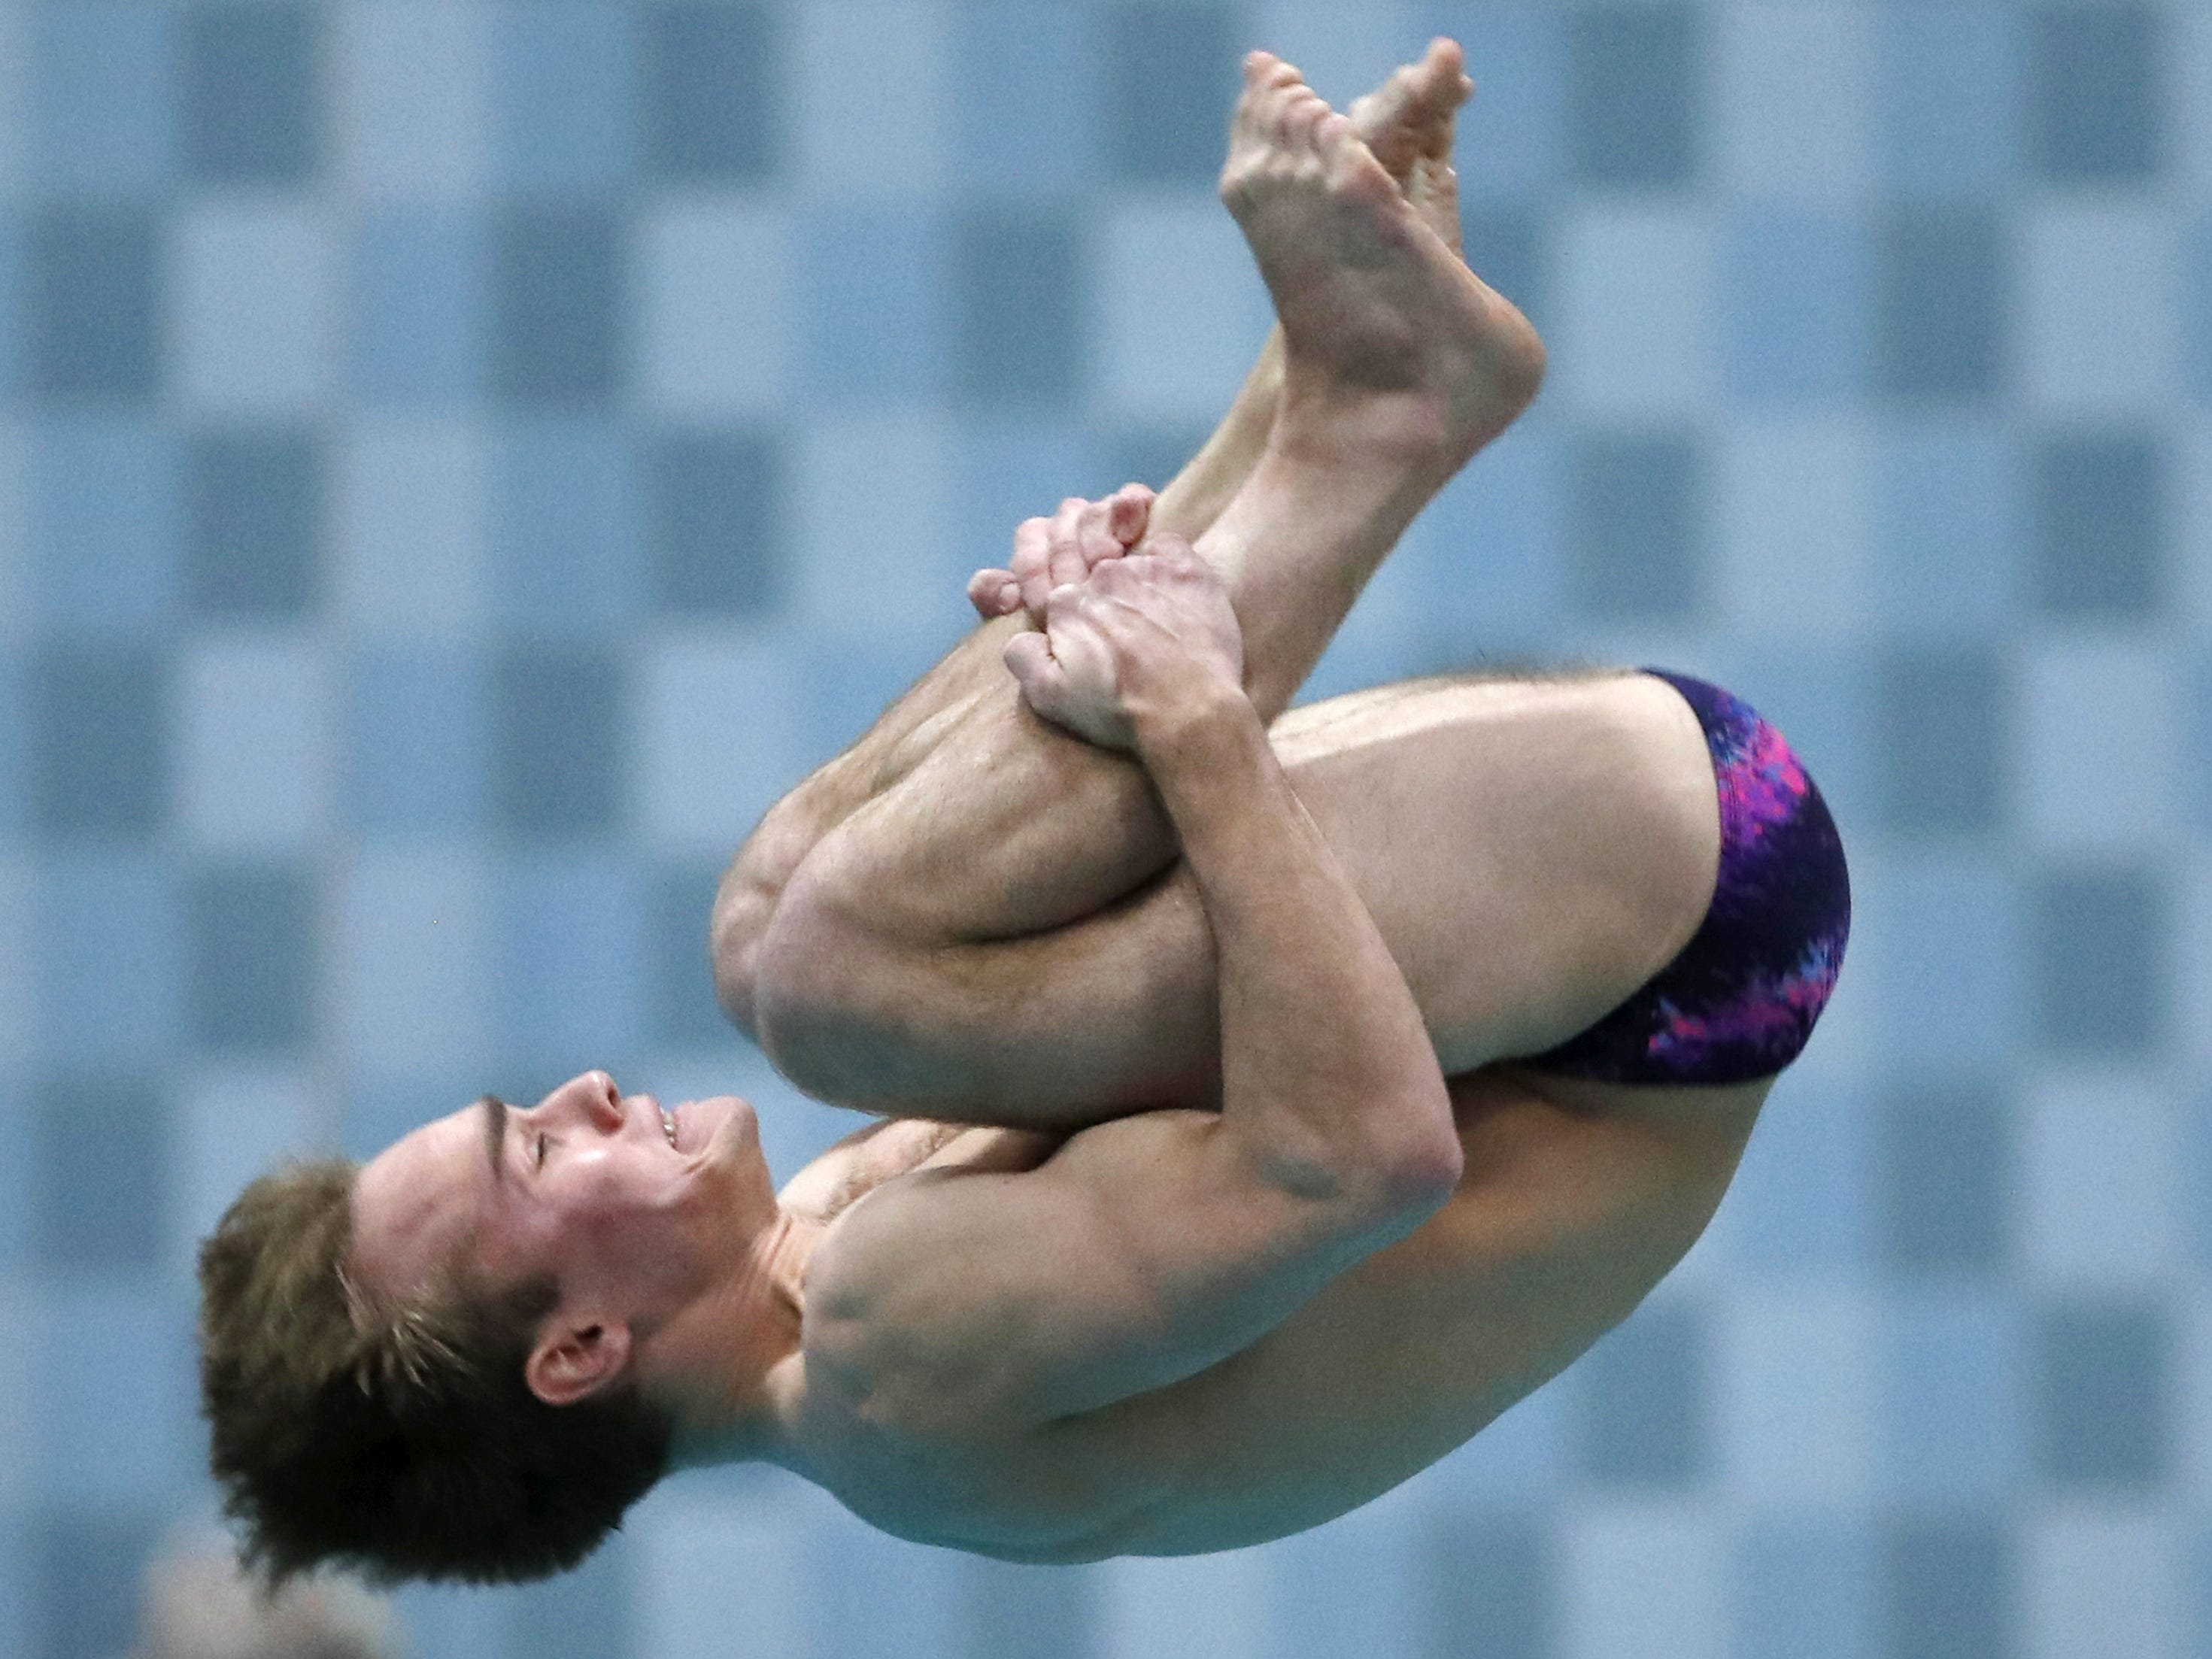 Franklin's Jared Kleczka dives during the Division 1 2019 State Boys Swimming and Diving Championships Saturday, Feb. 16, 2019, at the UW Natatorium in Madison, Wis. Danny Damiani/USA TODAY NETWORK-Wisconsin